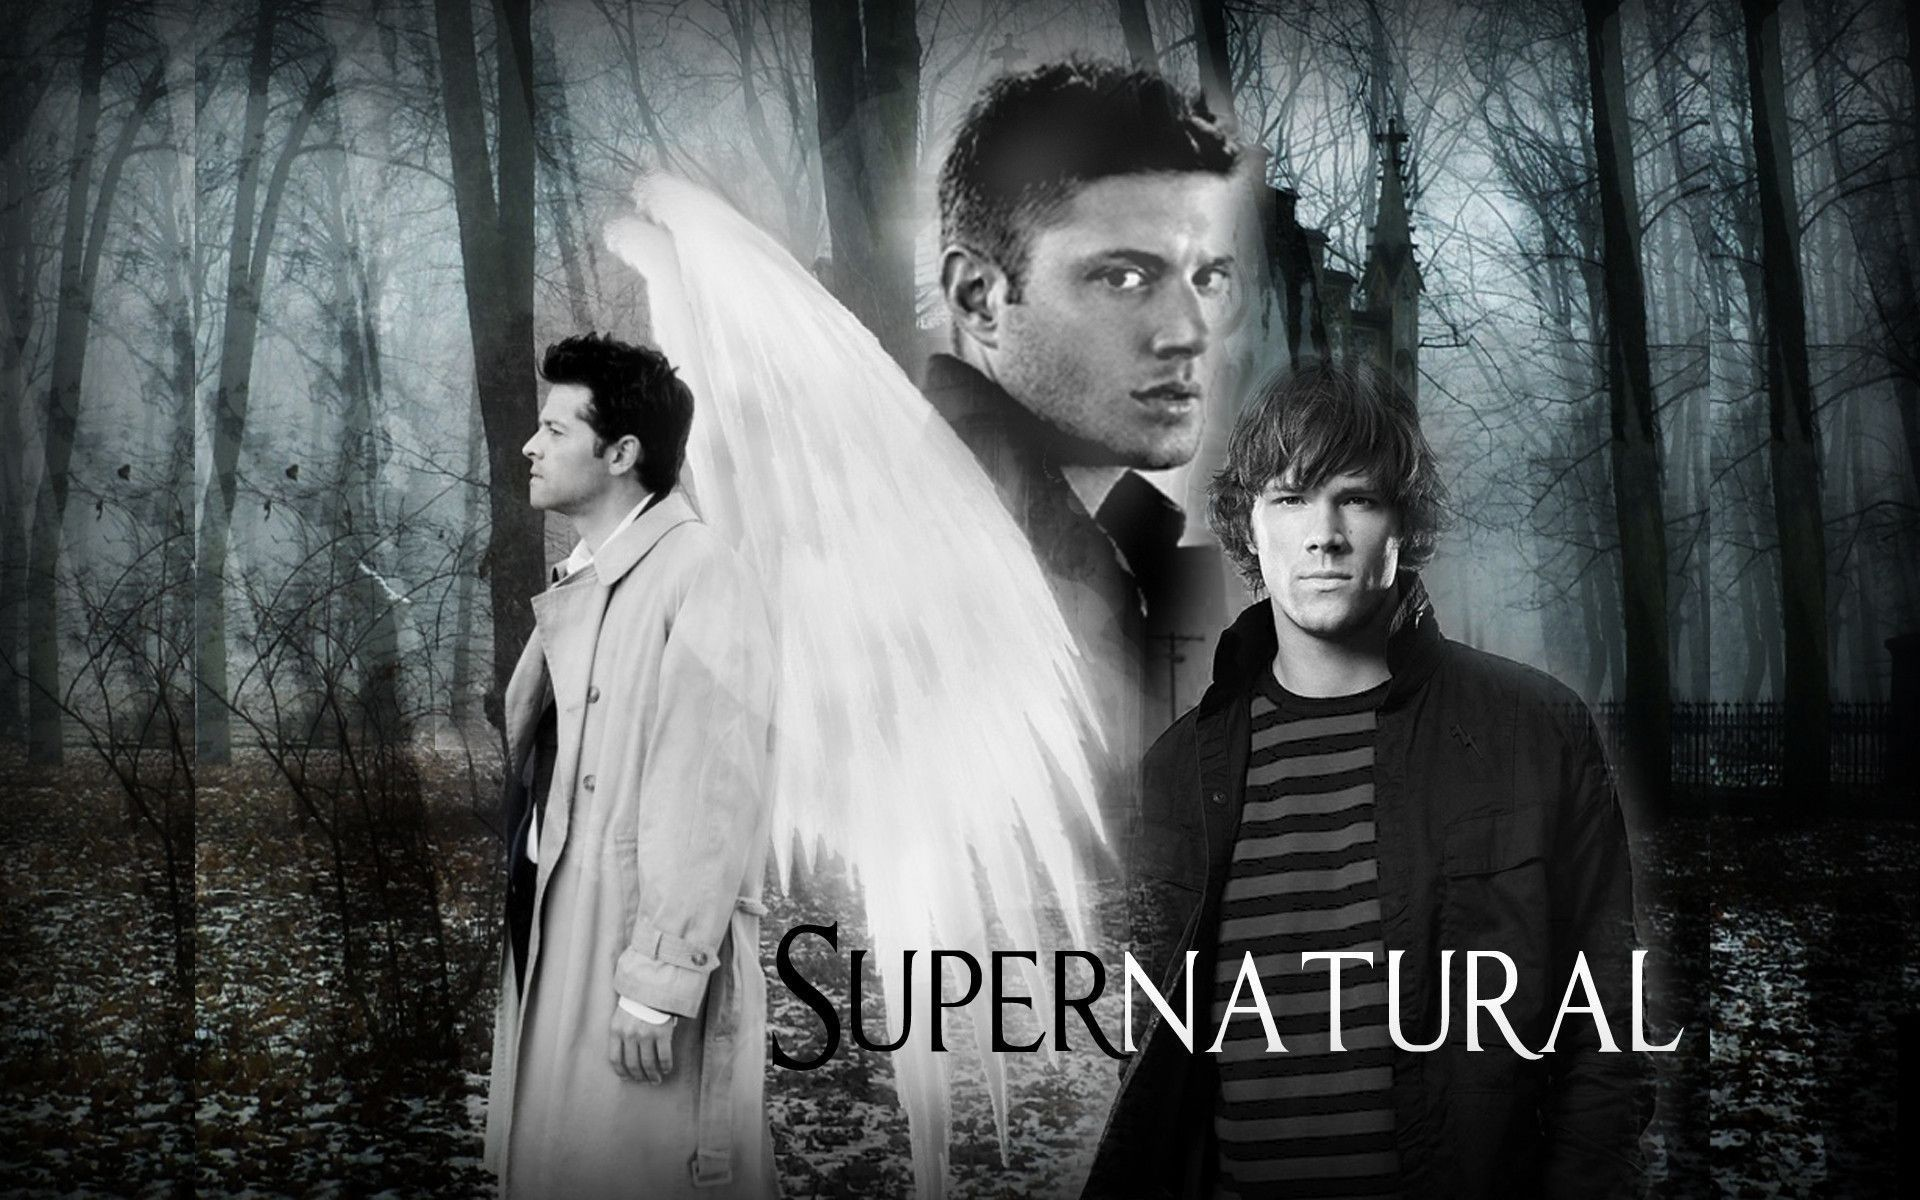 1920x1200 Supernatural Desktop Backgrounds Wallpaper 1920×1080 Supernatural Wallpaper (39 Wallpapers) | Adorable